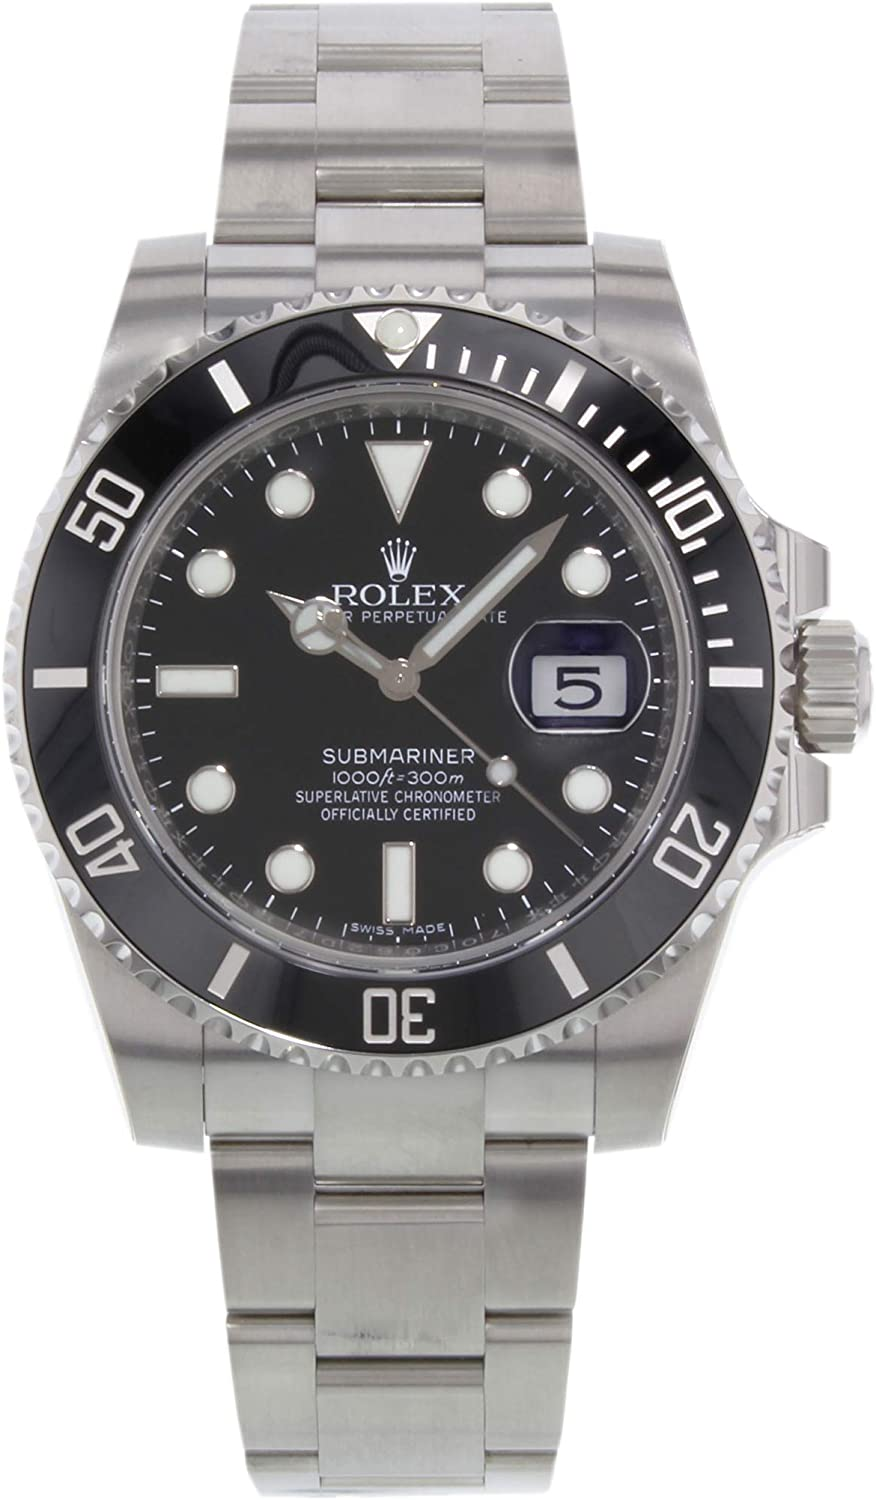 Image of Certified Pre-Owned Rolex Submariner Automatic-self-Wind Male Watch 116610